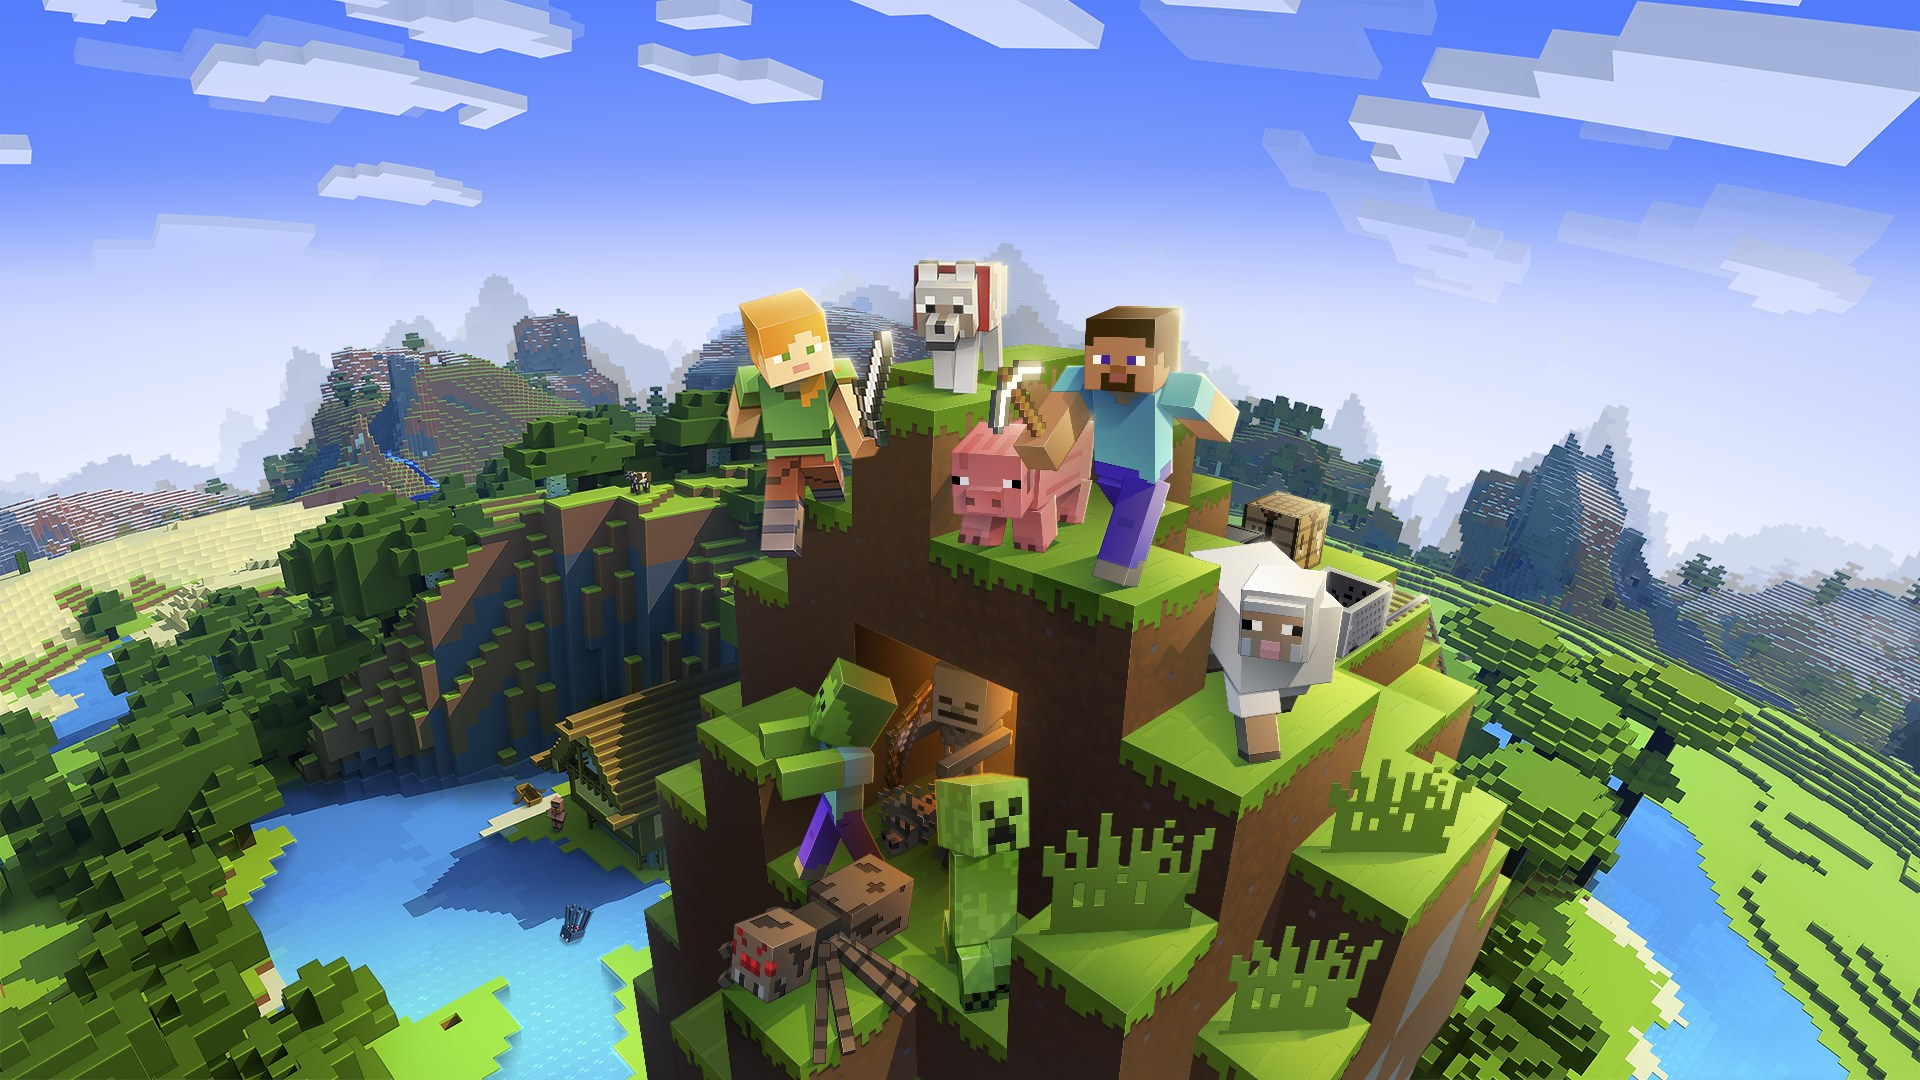 Minecraft Creator Being Slowly Expunged From History; Won't Be Part Of Game's 10th Anniversary